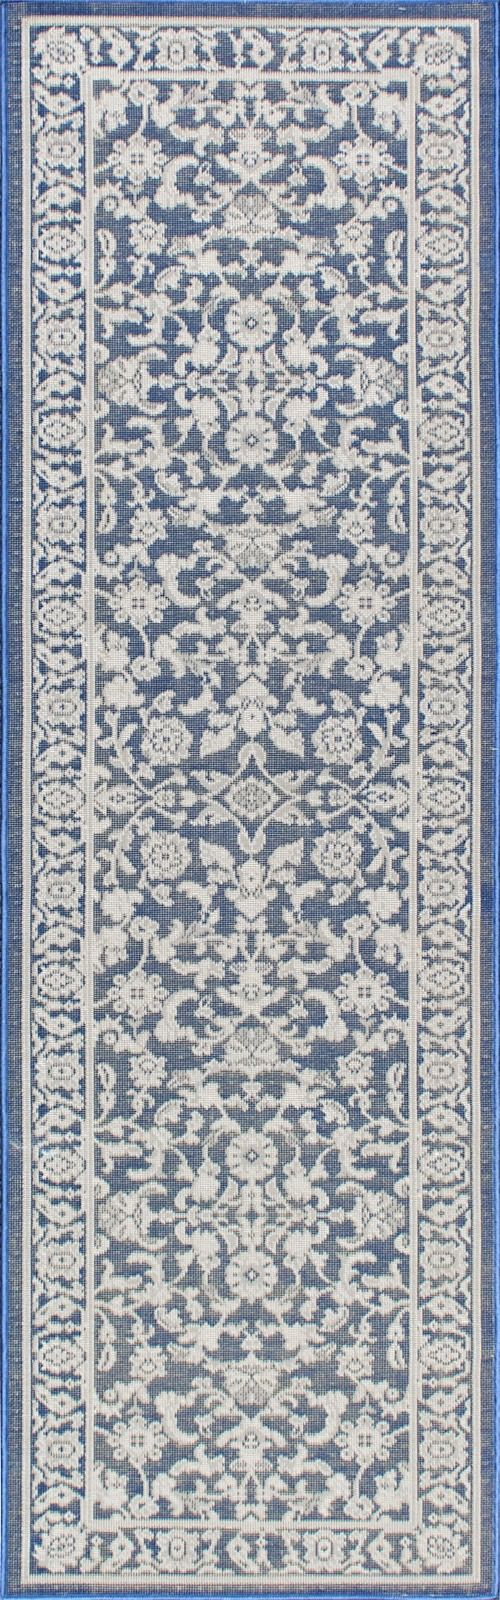 nuloom saavedra country & floral area rug collection